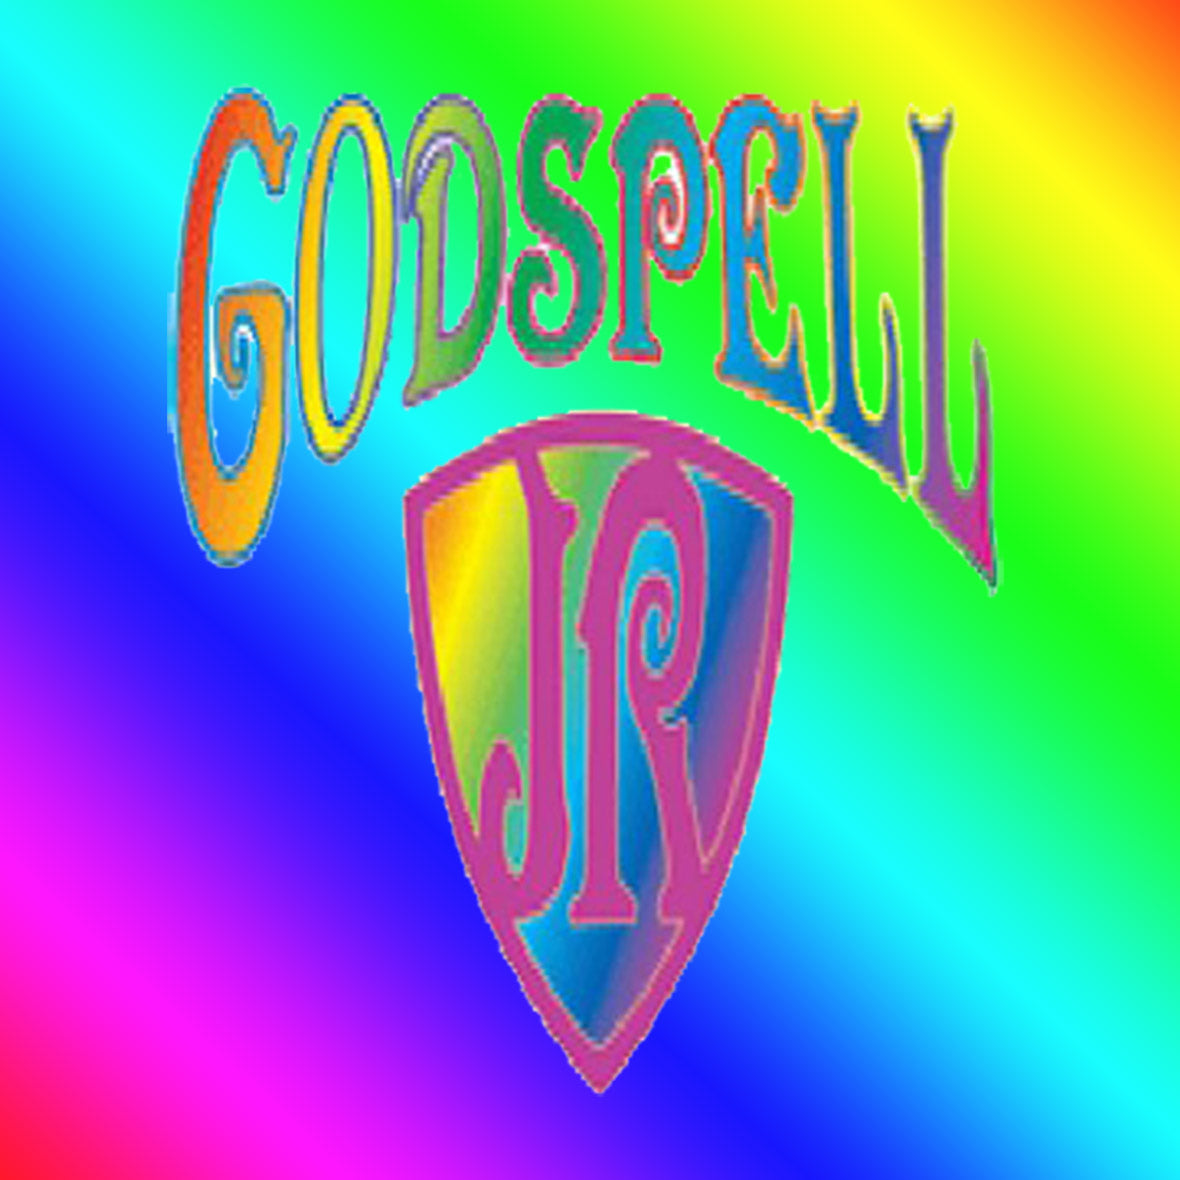 Godspell performed by Cardinal O'Hara Theater - 2020 - Active Image Media